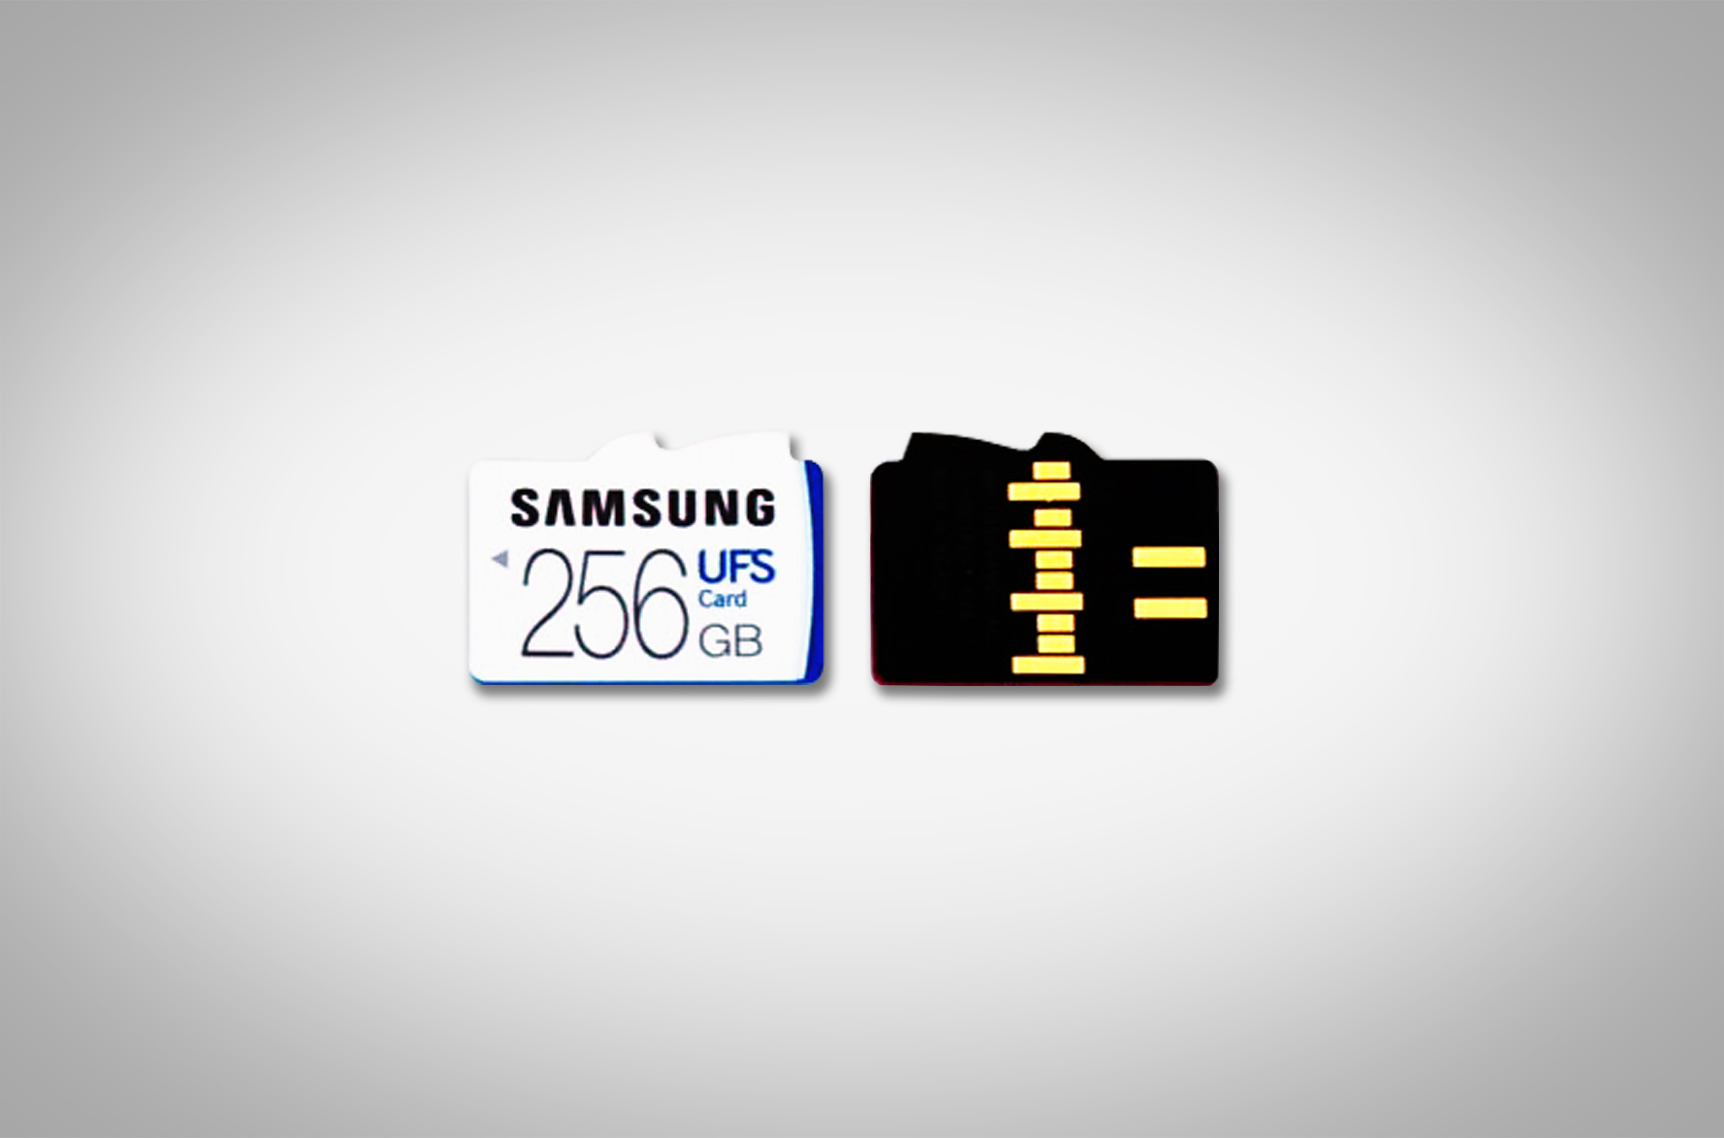 UFS 02 - Samsung unveils the sucessor to the MicroSD Cards as UFS Memory cards with much faster speeds